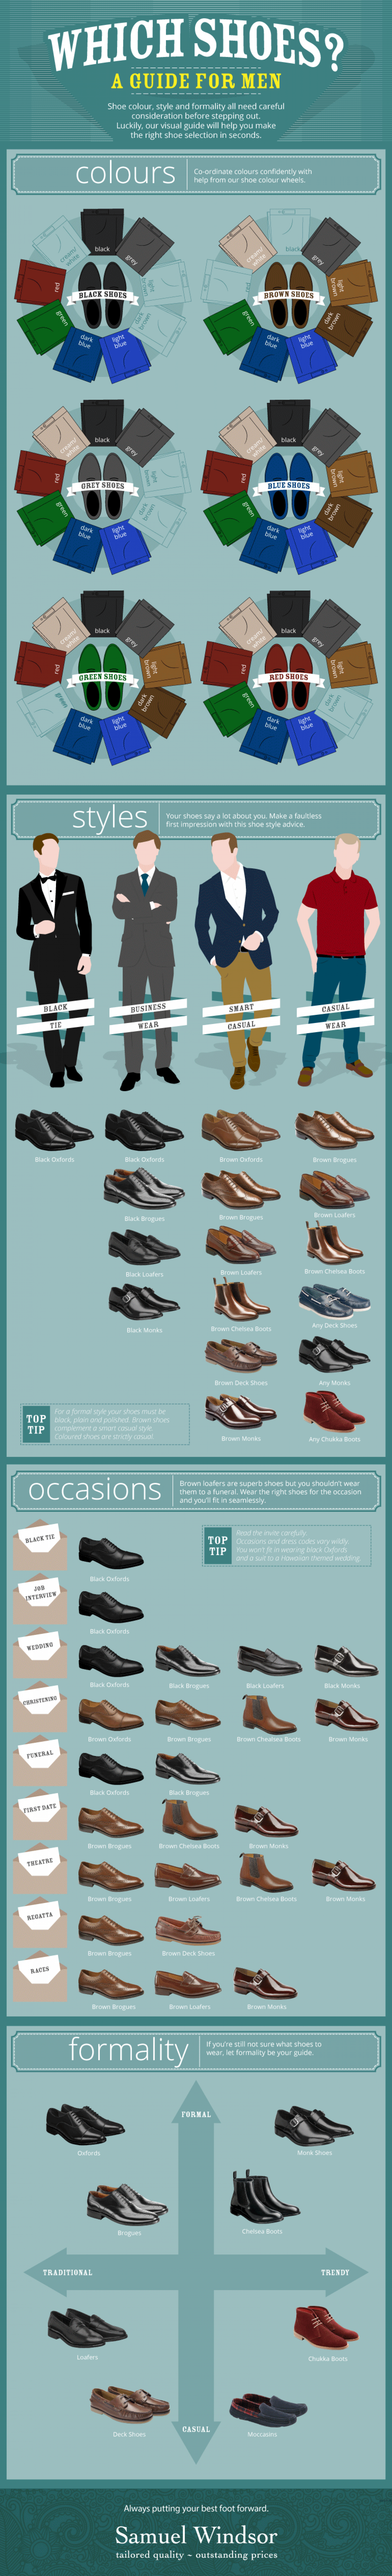 Which shoes? A guide for men Infographic